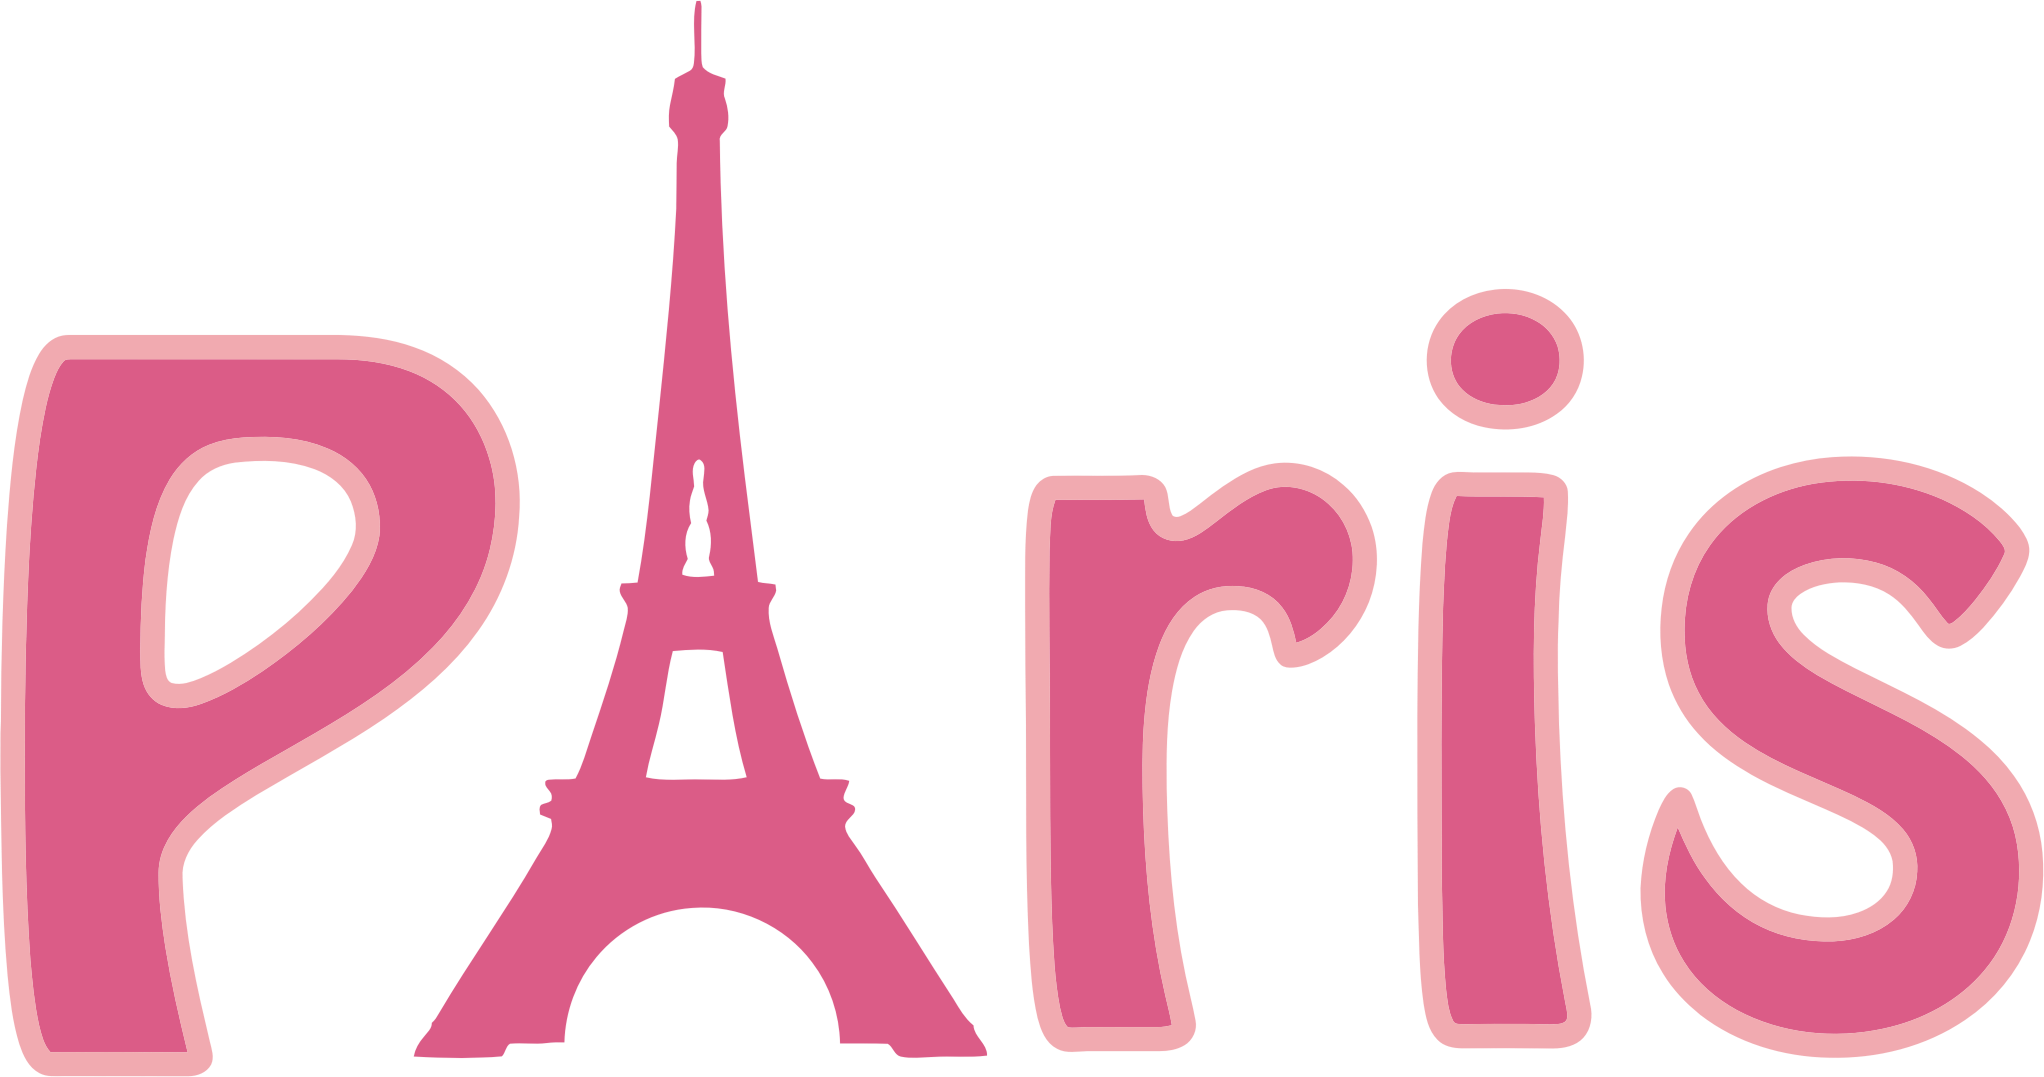 Paris Typography by GDJ